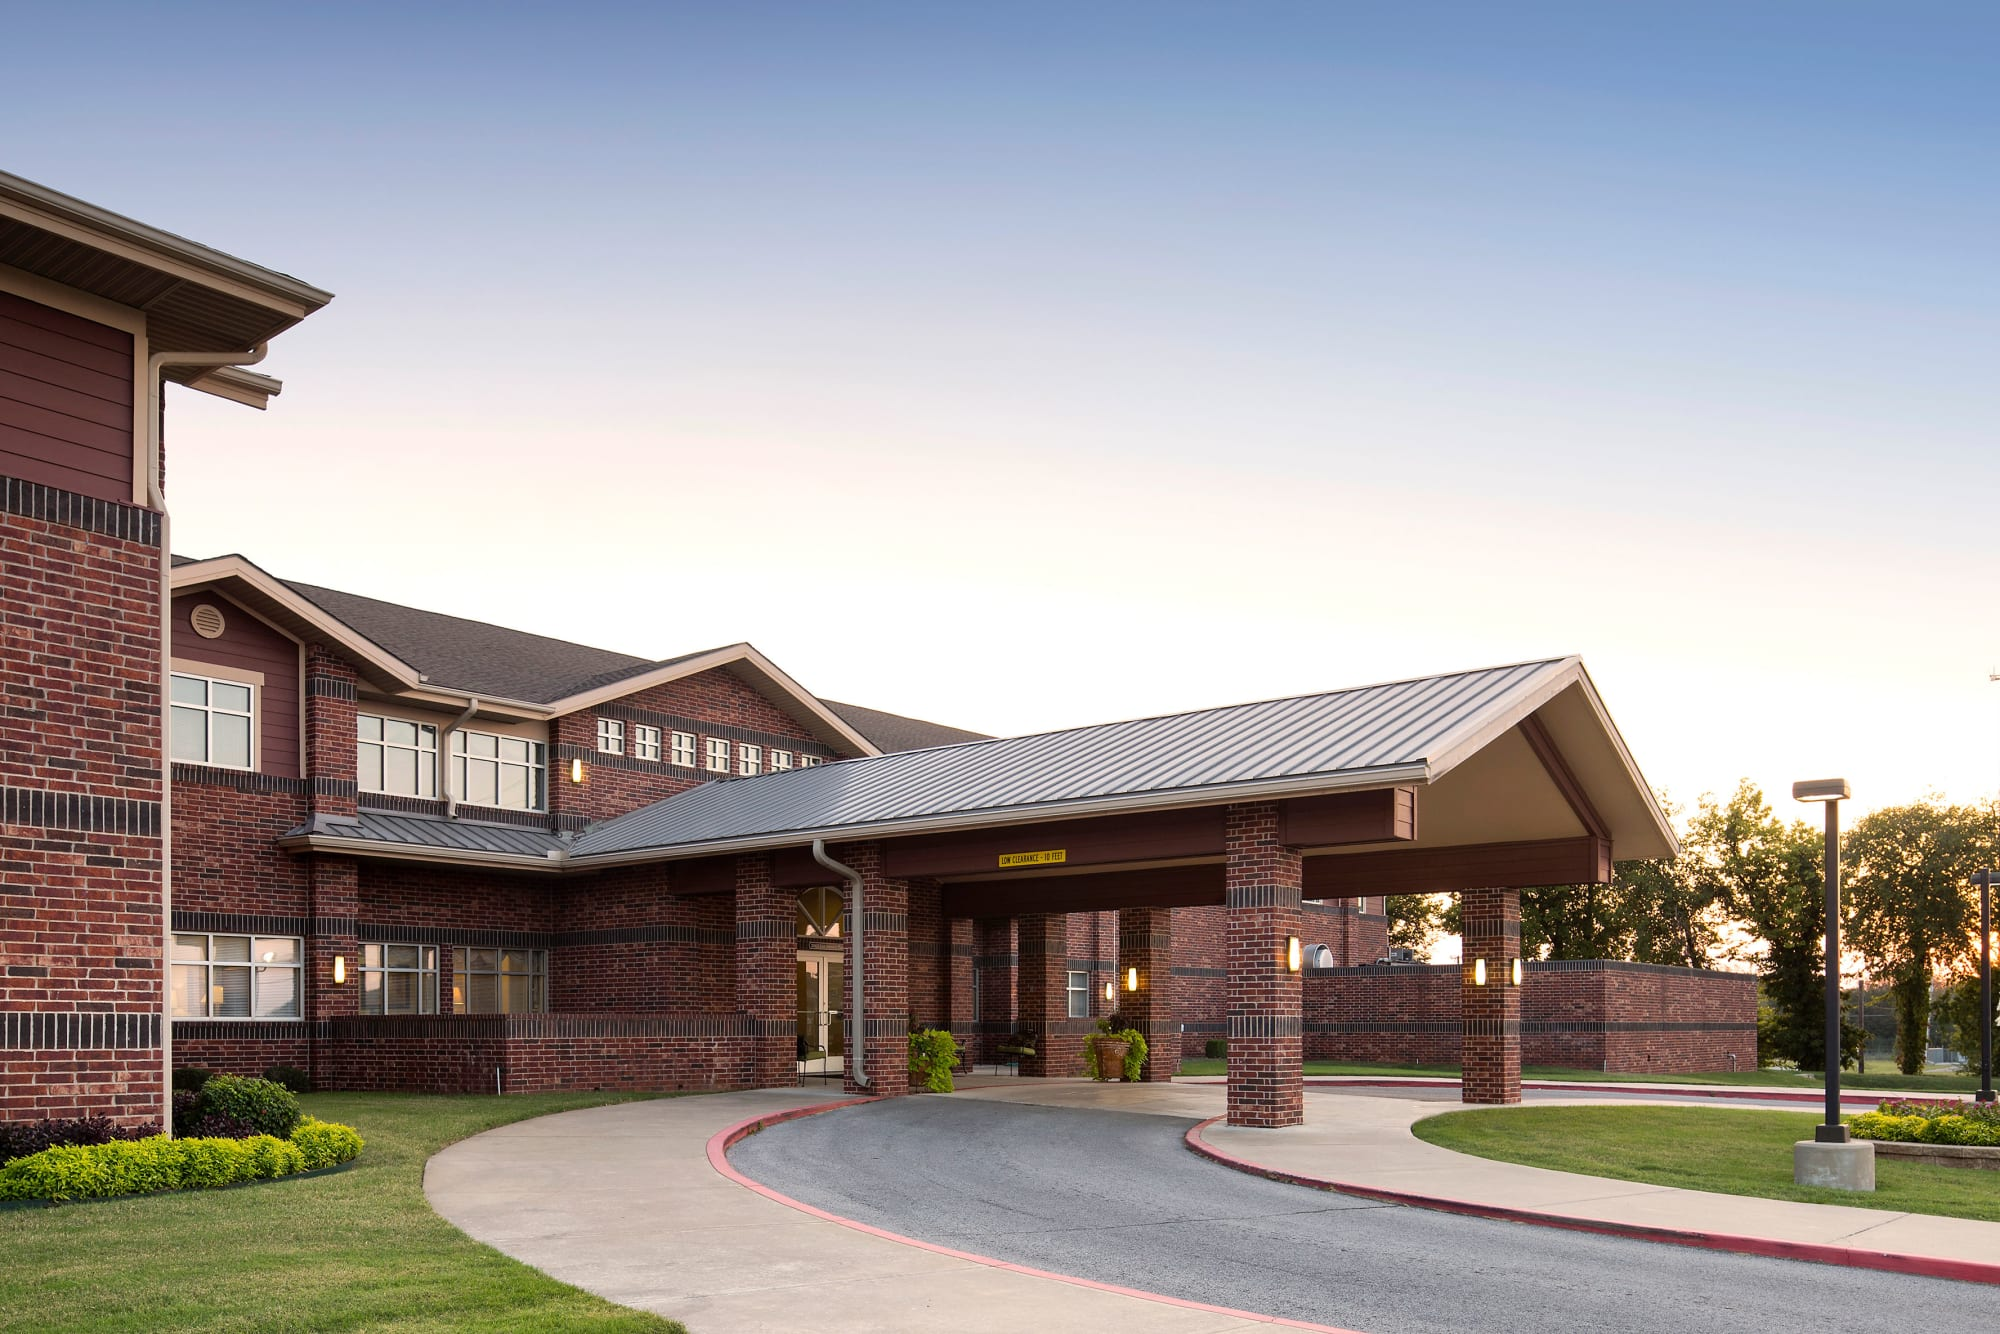 Driveway leading into Canoe Brook Assisted Living & Memory Care in Catoosa, Oklahoma